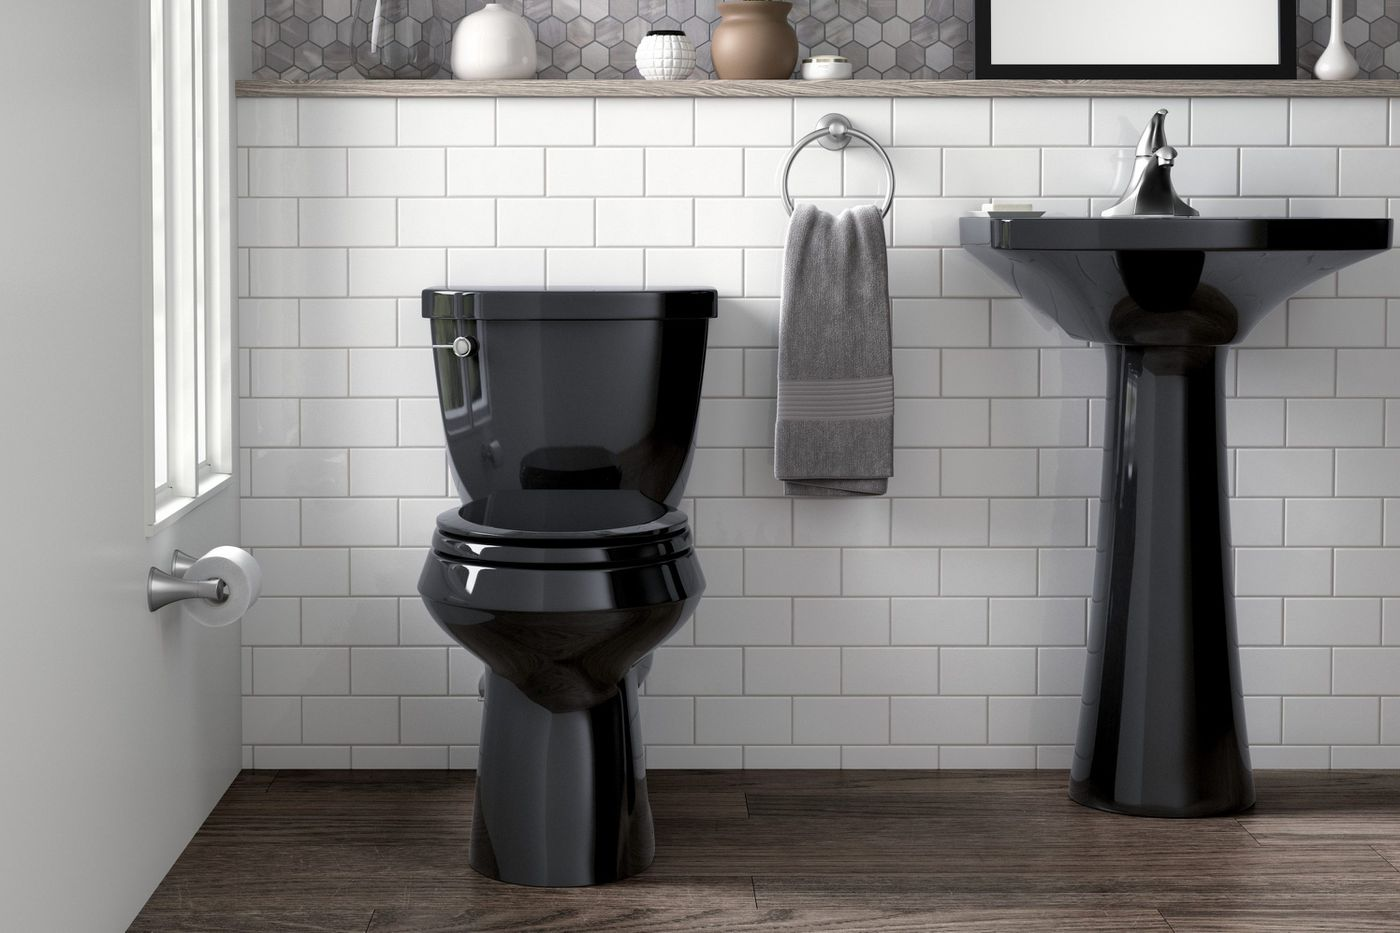 A black toilet? This unconventional choice is a bathroom trend